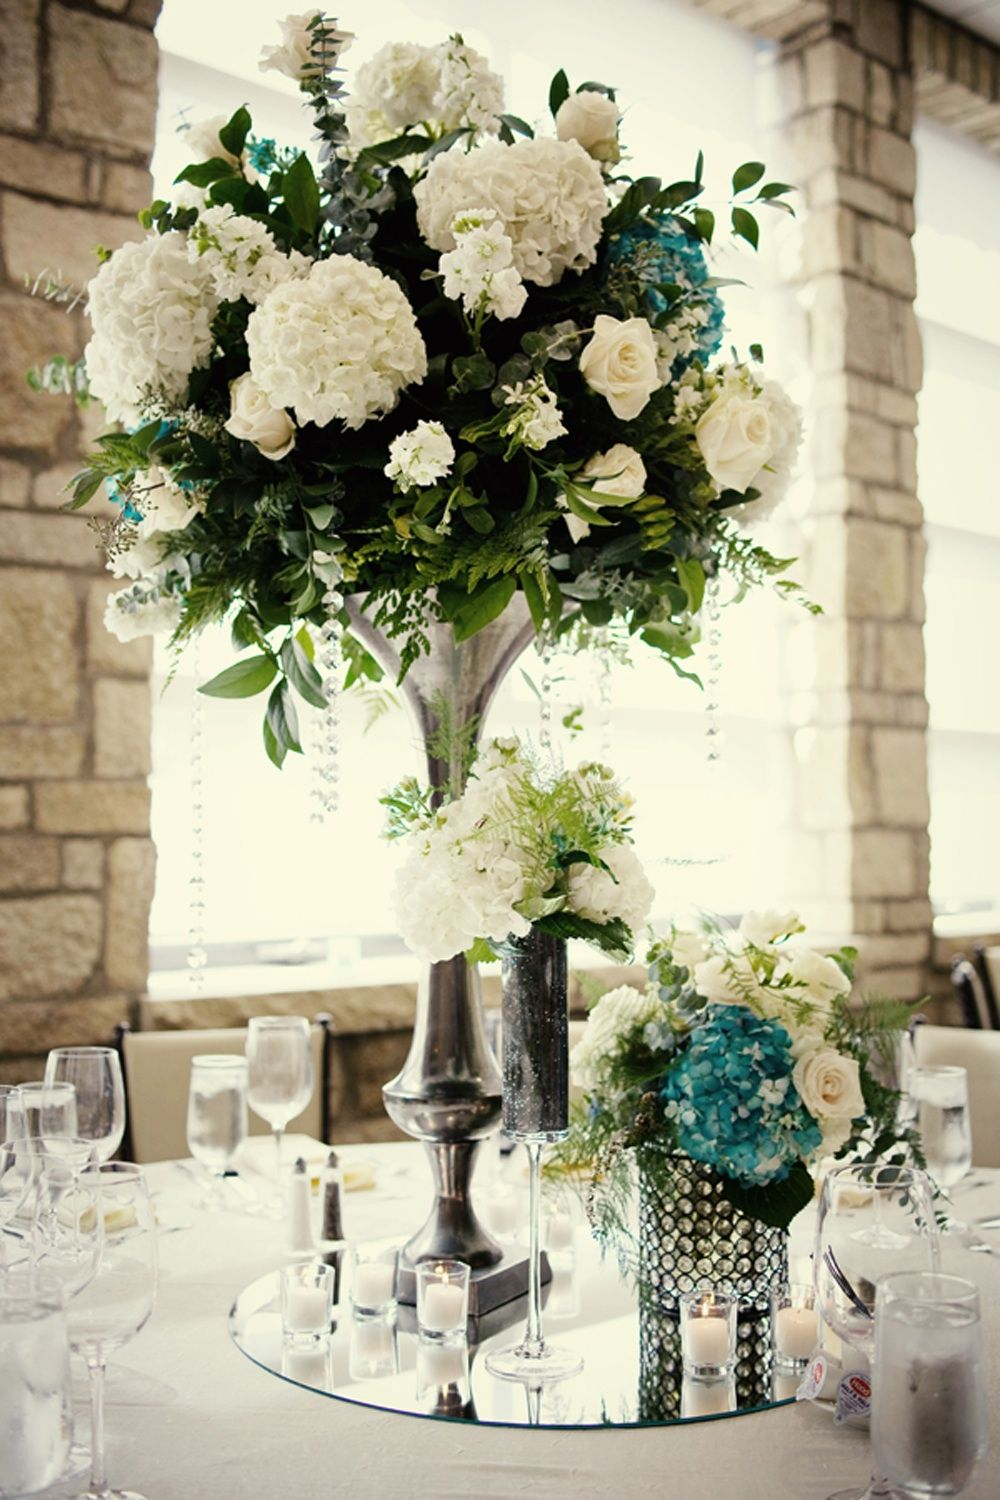 centerpieces for wedding elegant wedding reception centerpieces ivory hydrangeas teal accents Real Wedding Weddings Styles and Summer